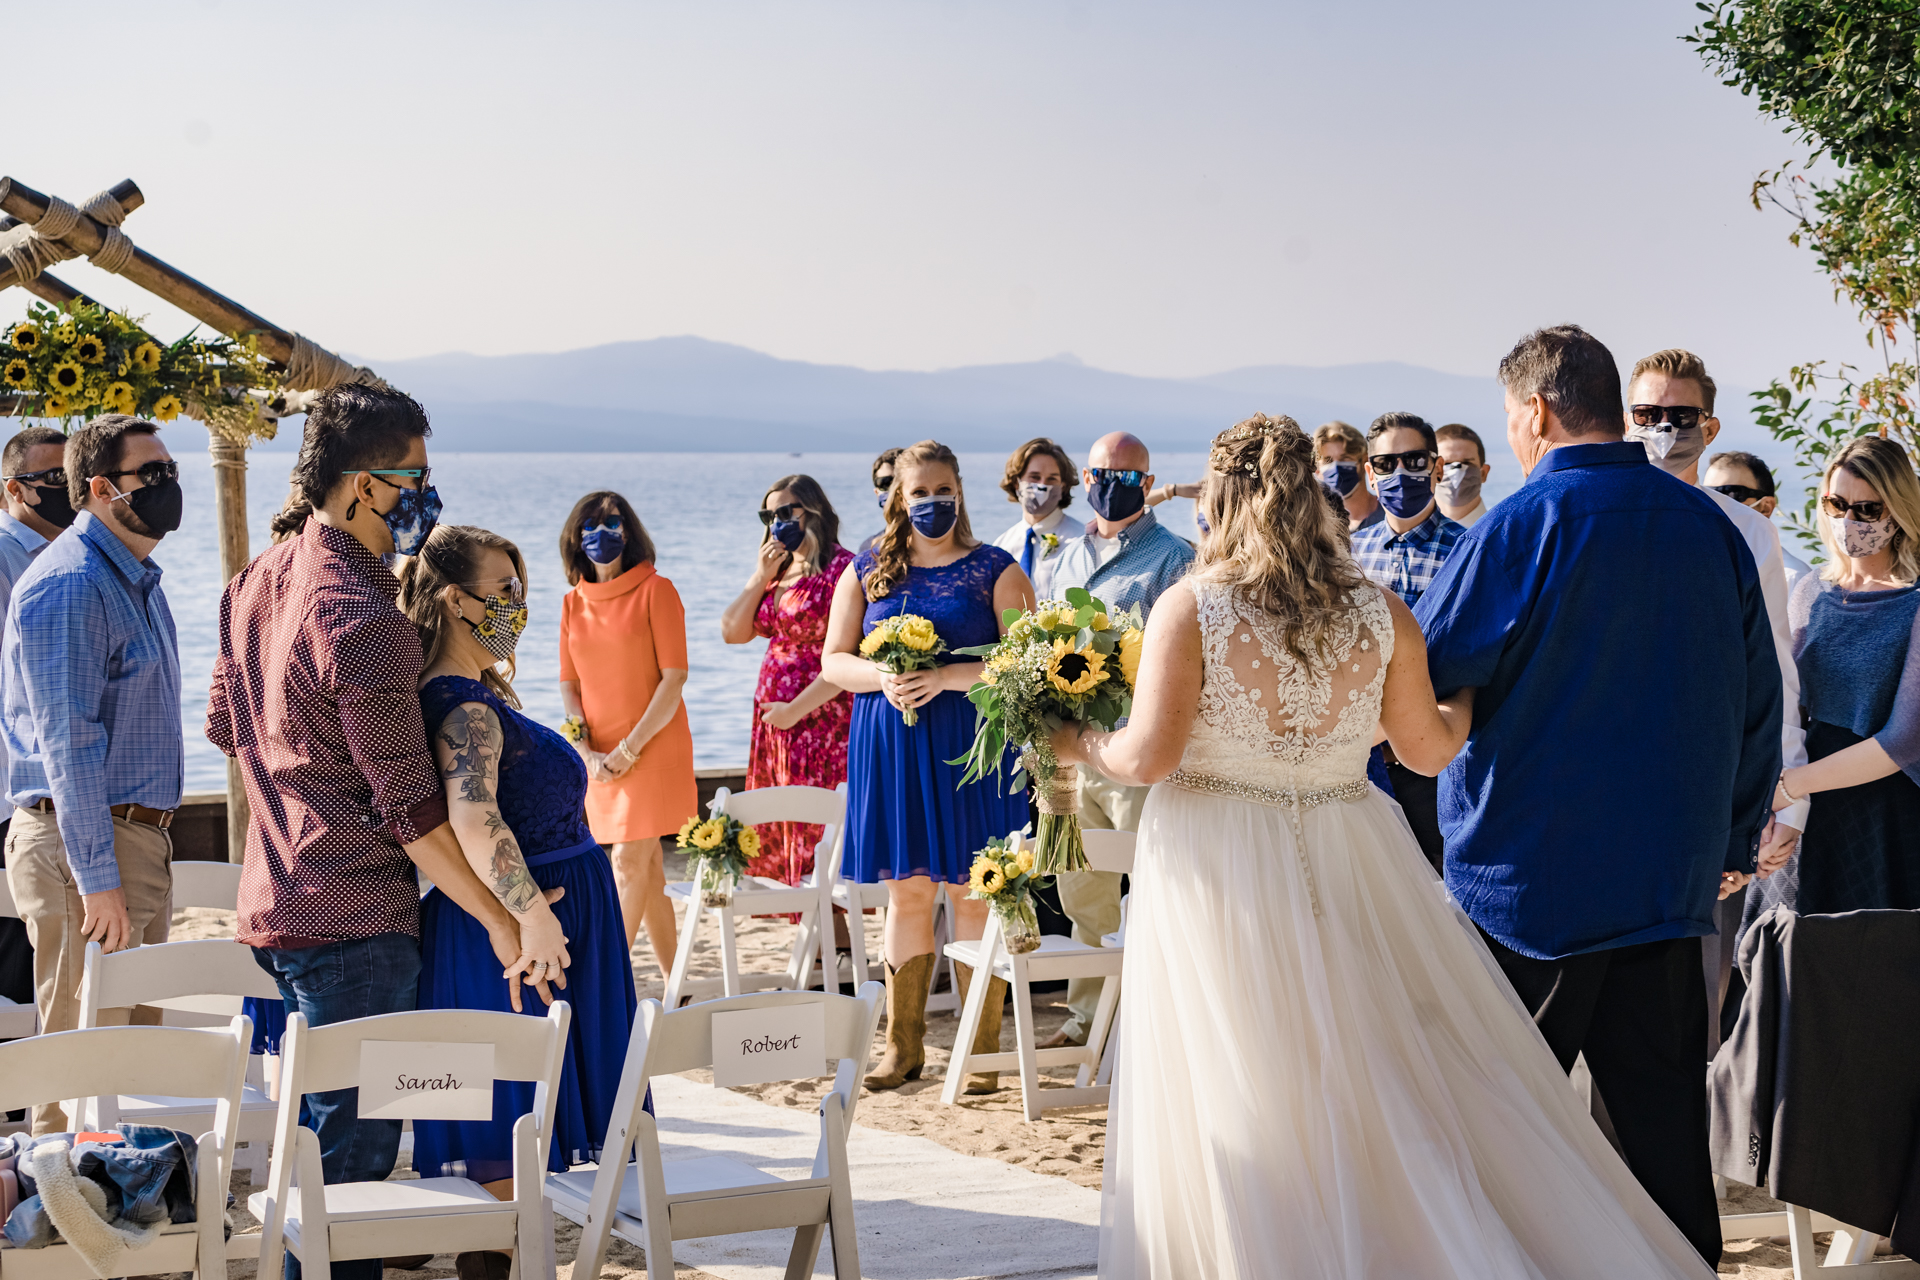 A Wedding at Lakeside Beach - Wedding venue images | The bride and her father walk down the aisle of the outdoor ceremony